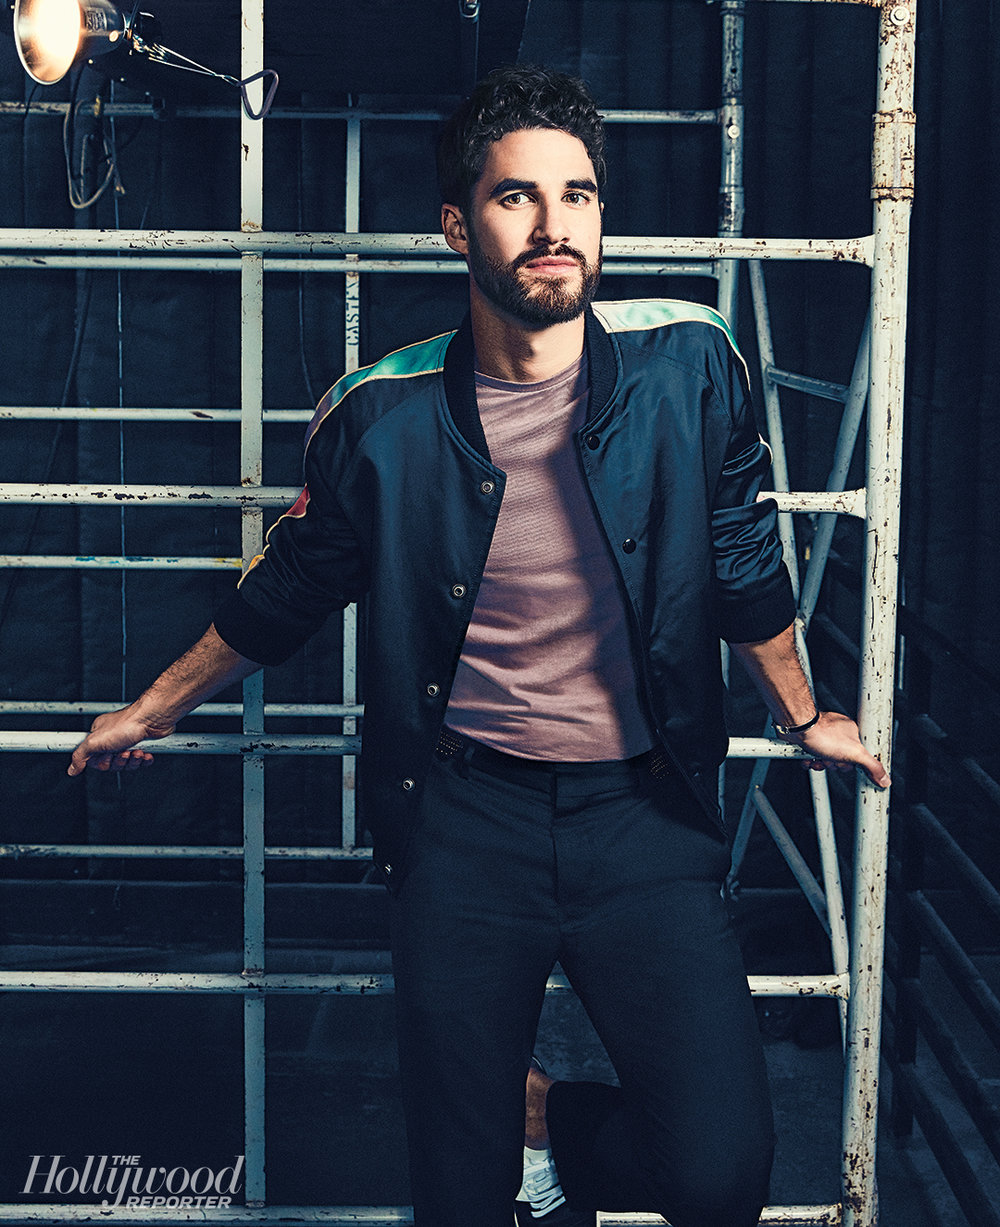 Photographed by Koury Angelo_20180428_THR_DRAMA_ACTOR_DARREN_CRISS_0222_C0v2.jpg